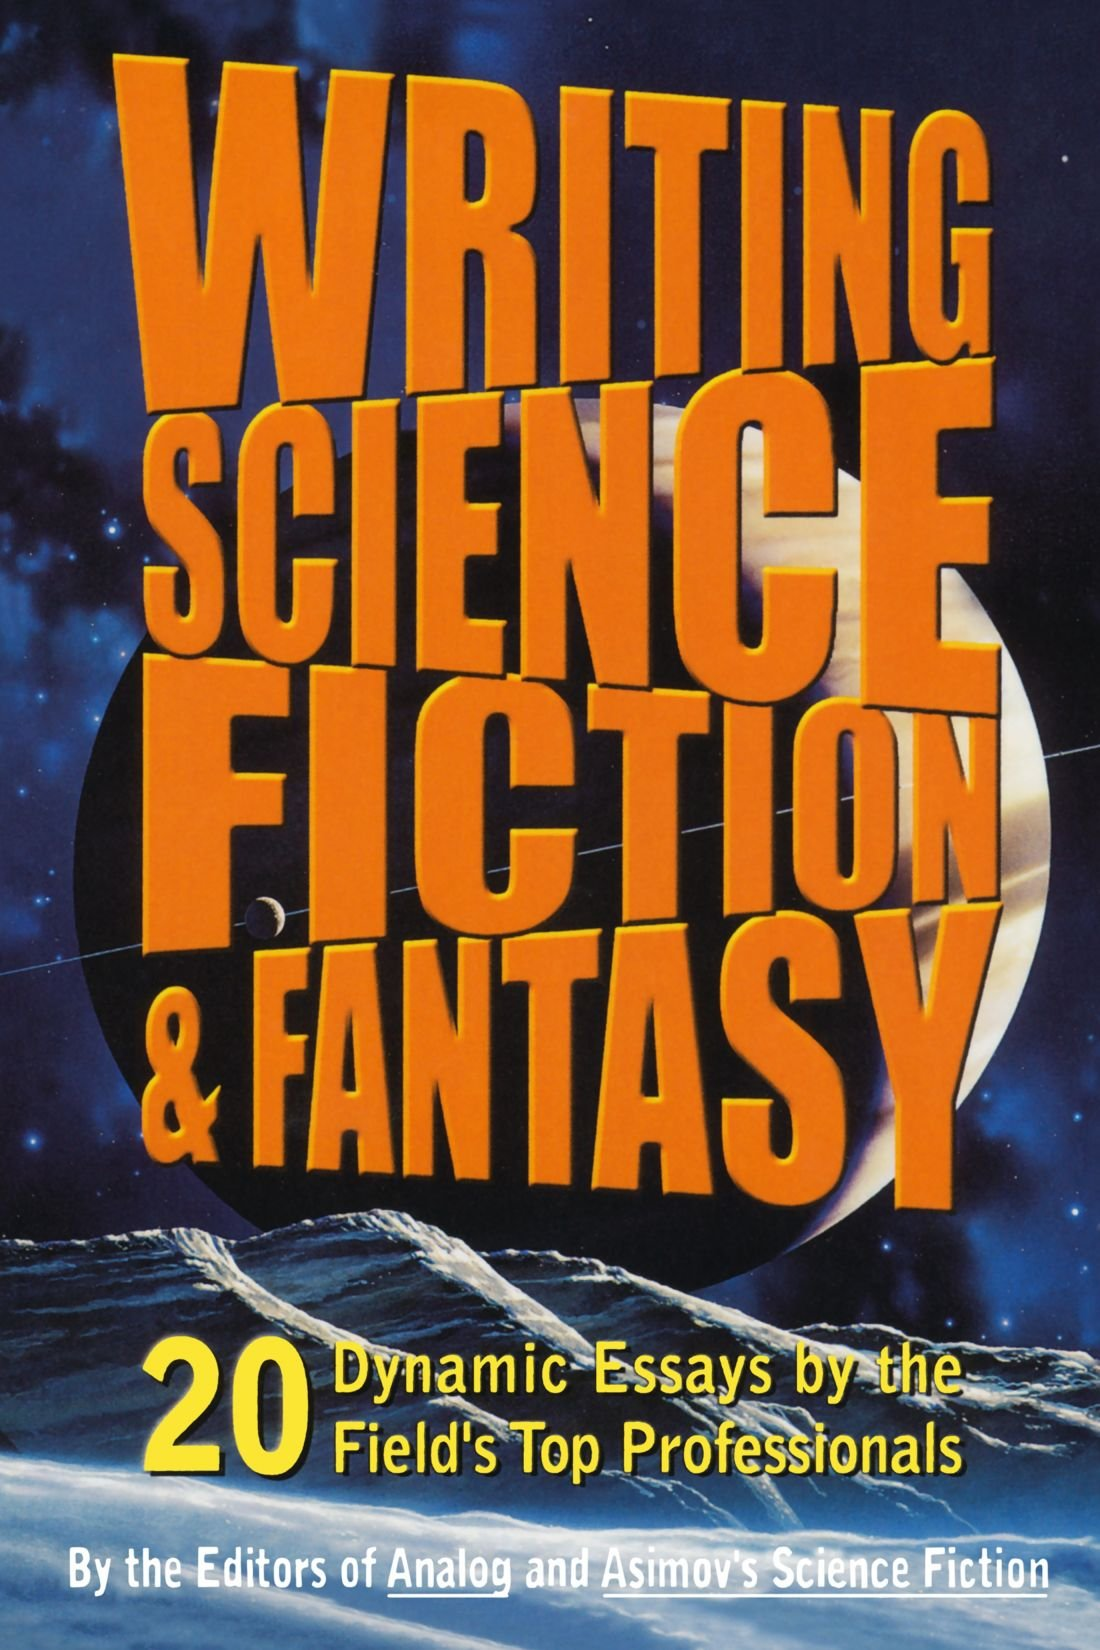 writing science fiction fantasy dynamic essays by the writing science fiction fantasy 20 dynamic essays by the field s top professionals analog and isaac asimov s science fiction magazine 8601422160925